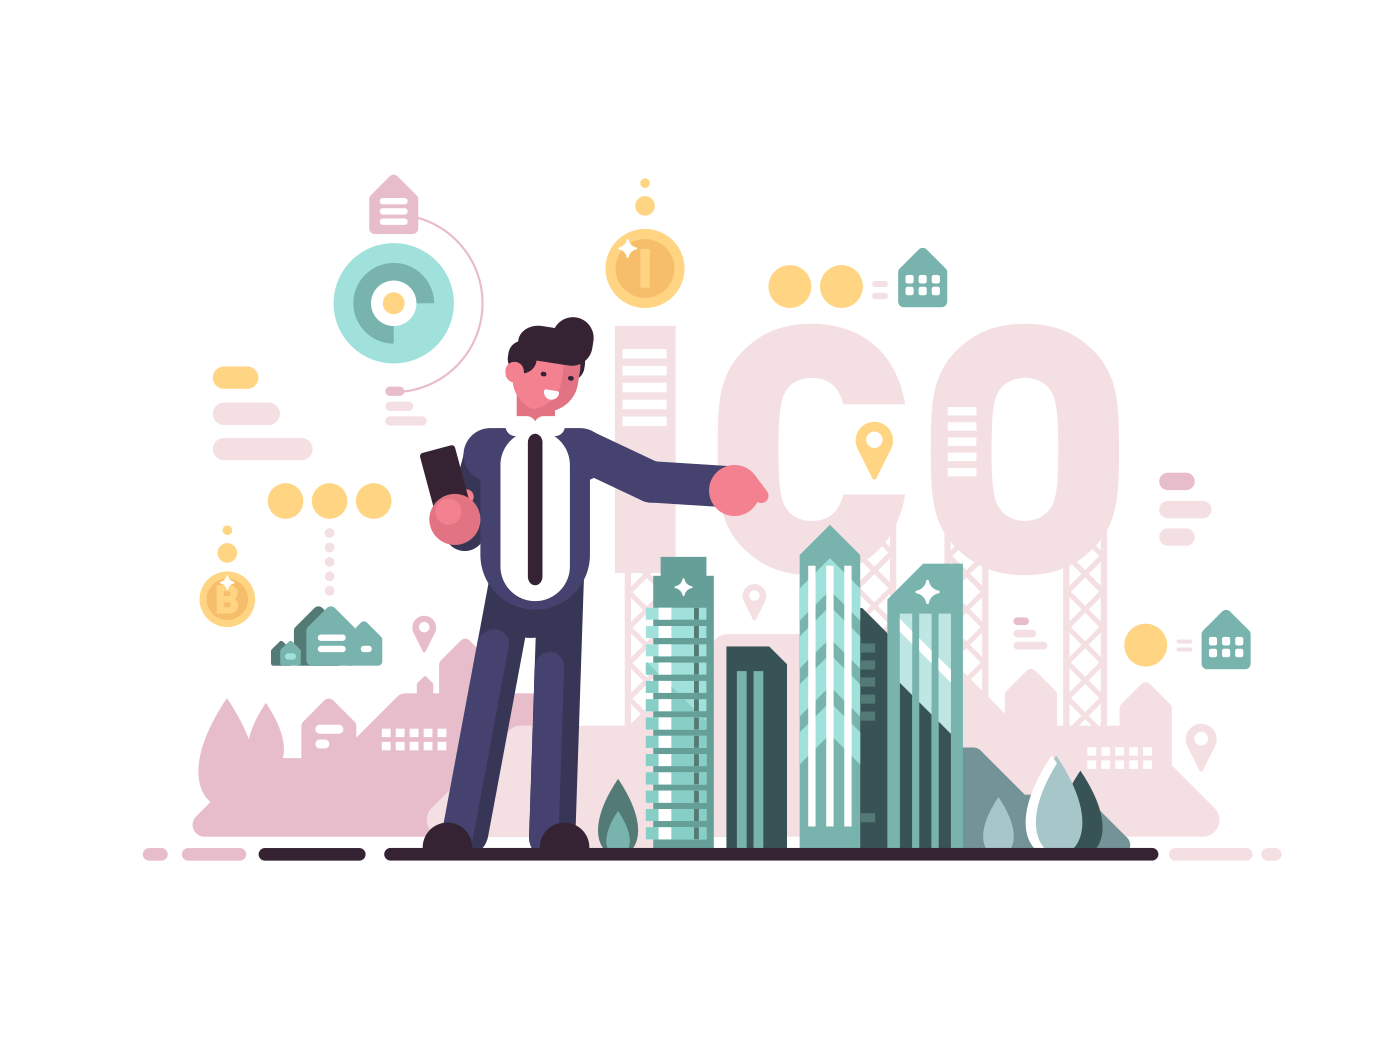 Initial coin offering. Crypto-currency business, modern businessman. Vector flat illustration